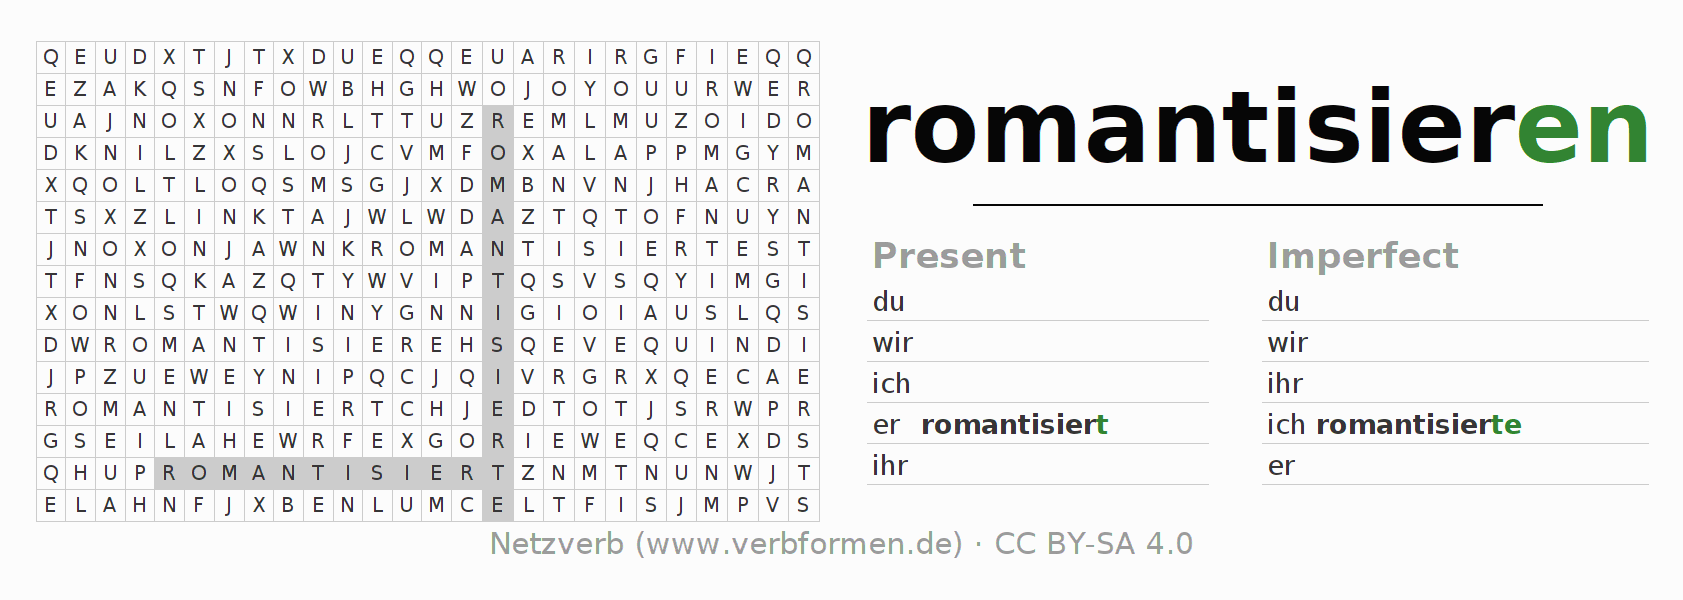 Word search puzzle for the conjugation of the verb romantisieren